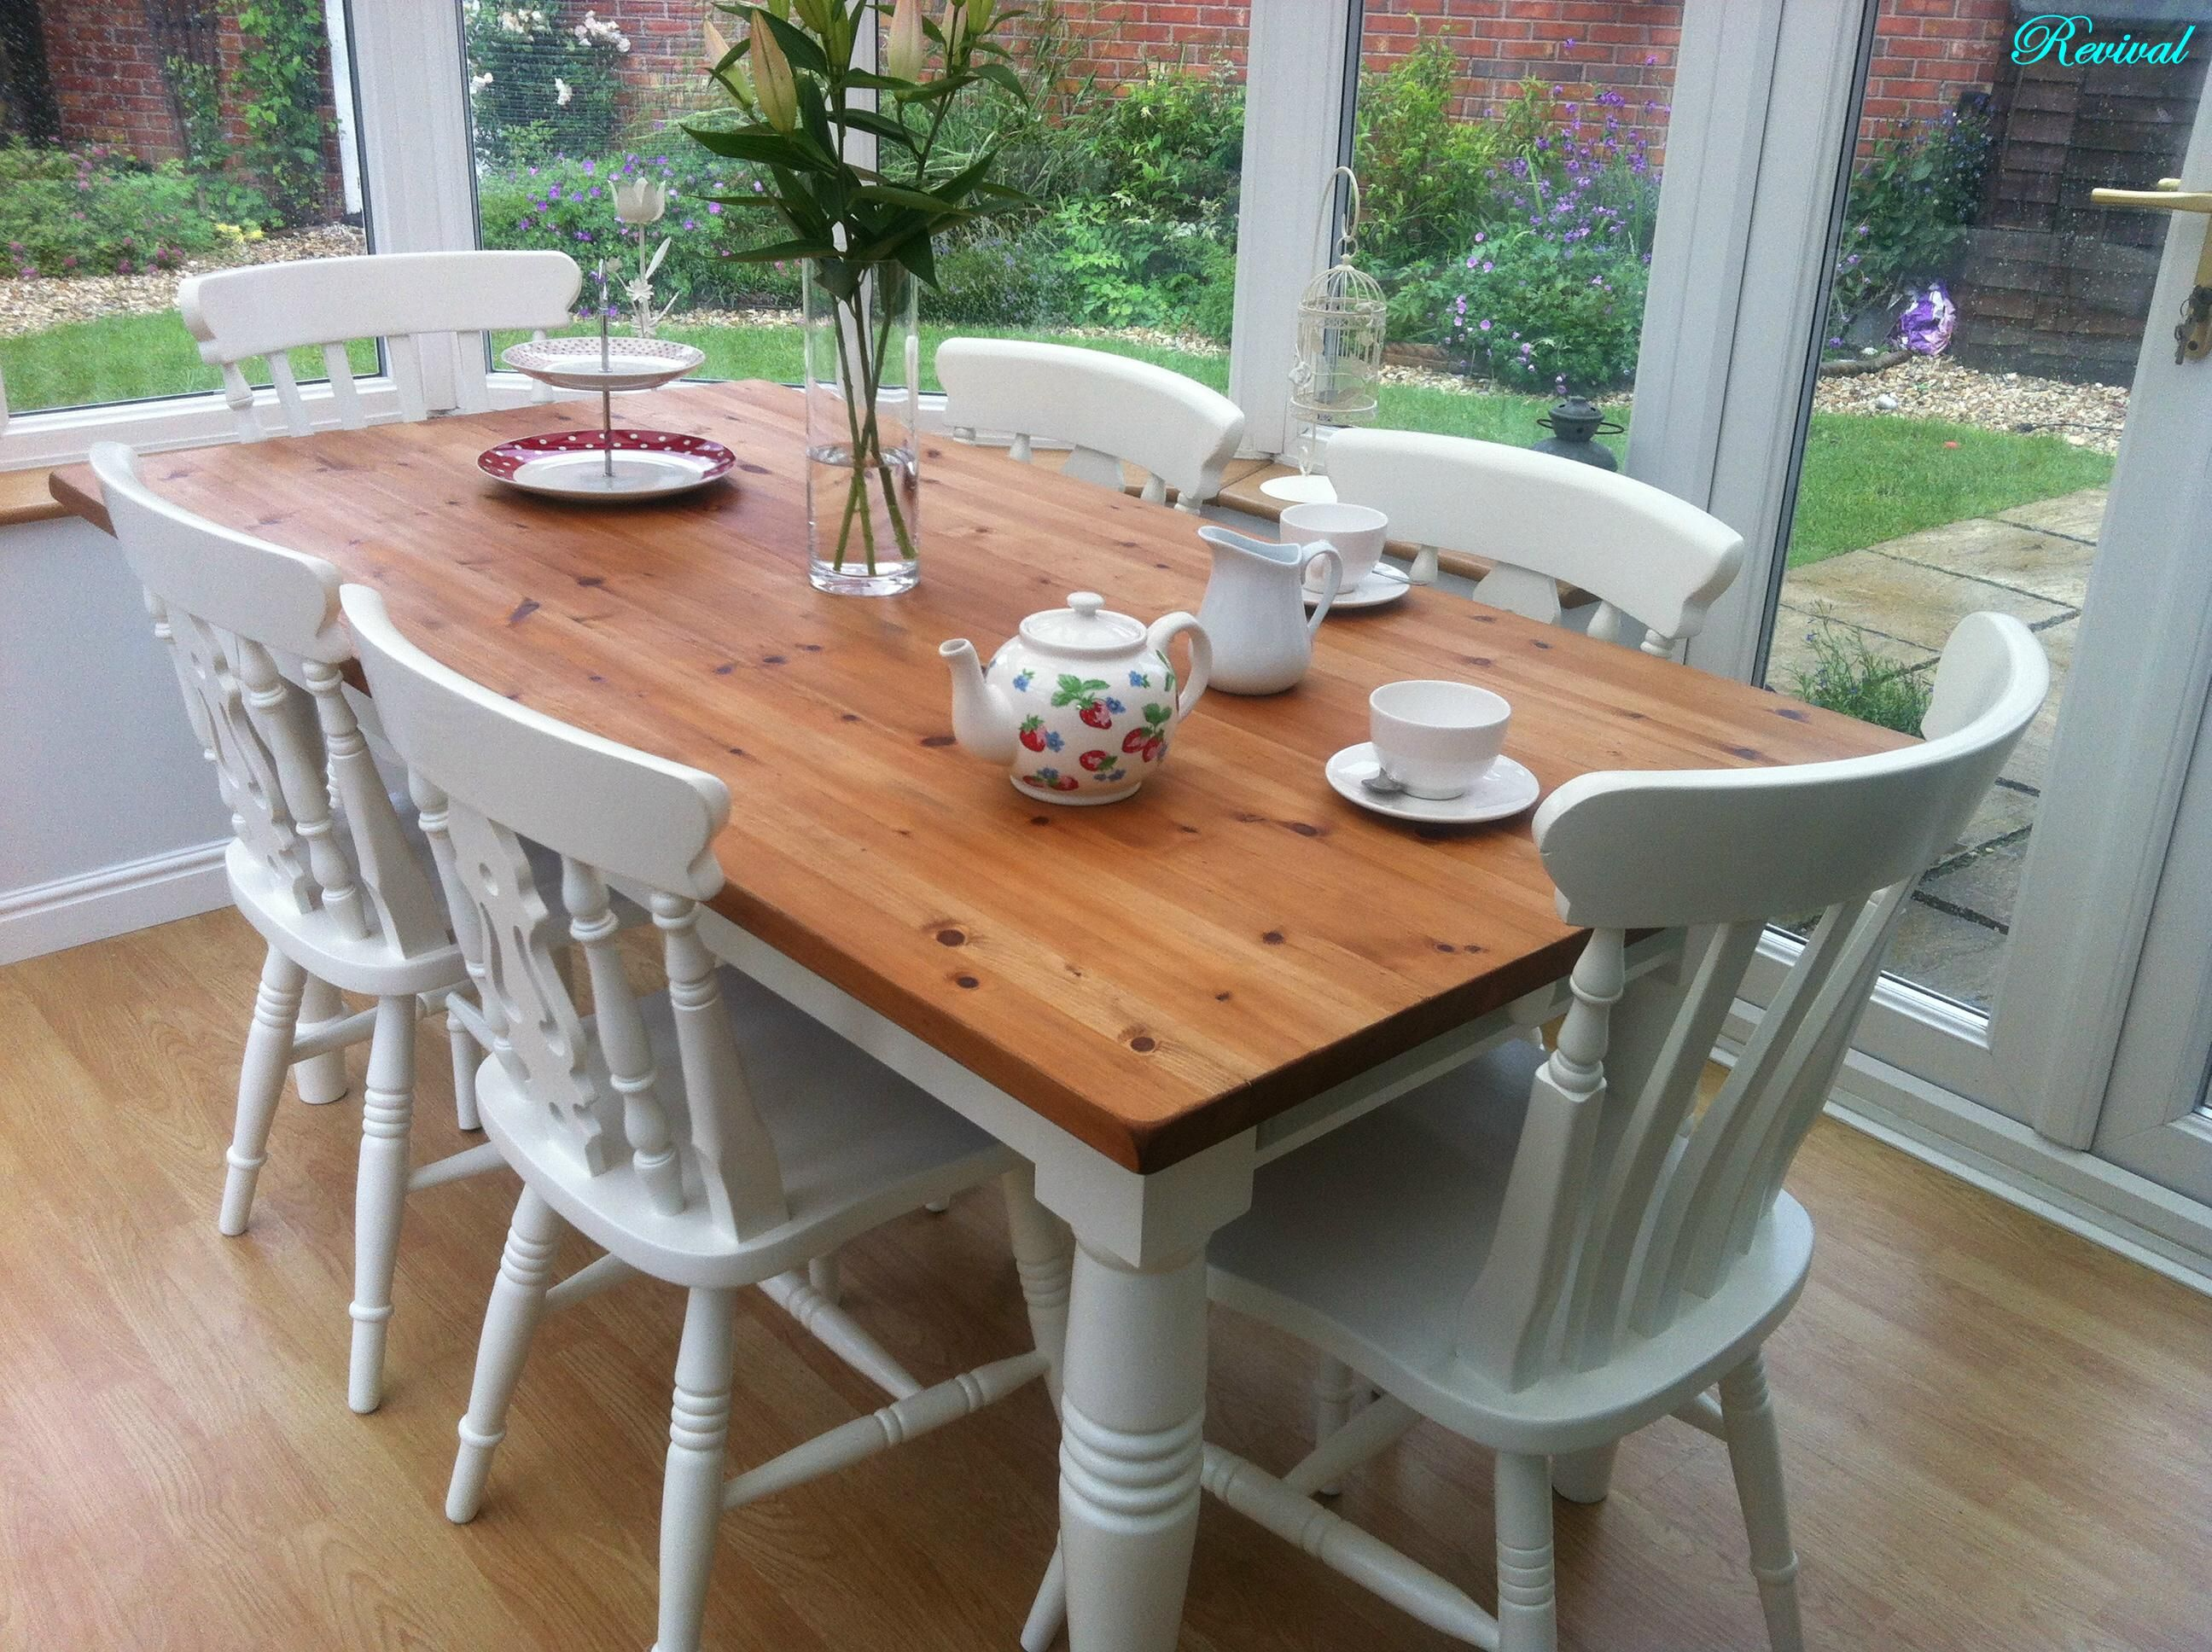 A Traditional Rustic Pine Farmhouse Table with 6 Chairs ...